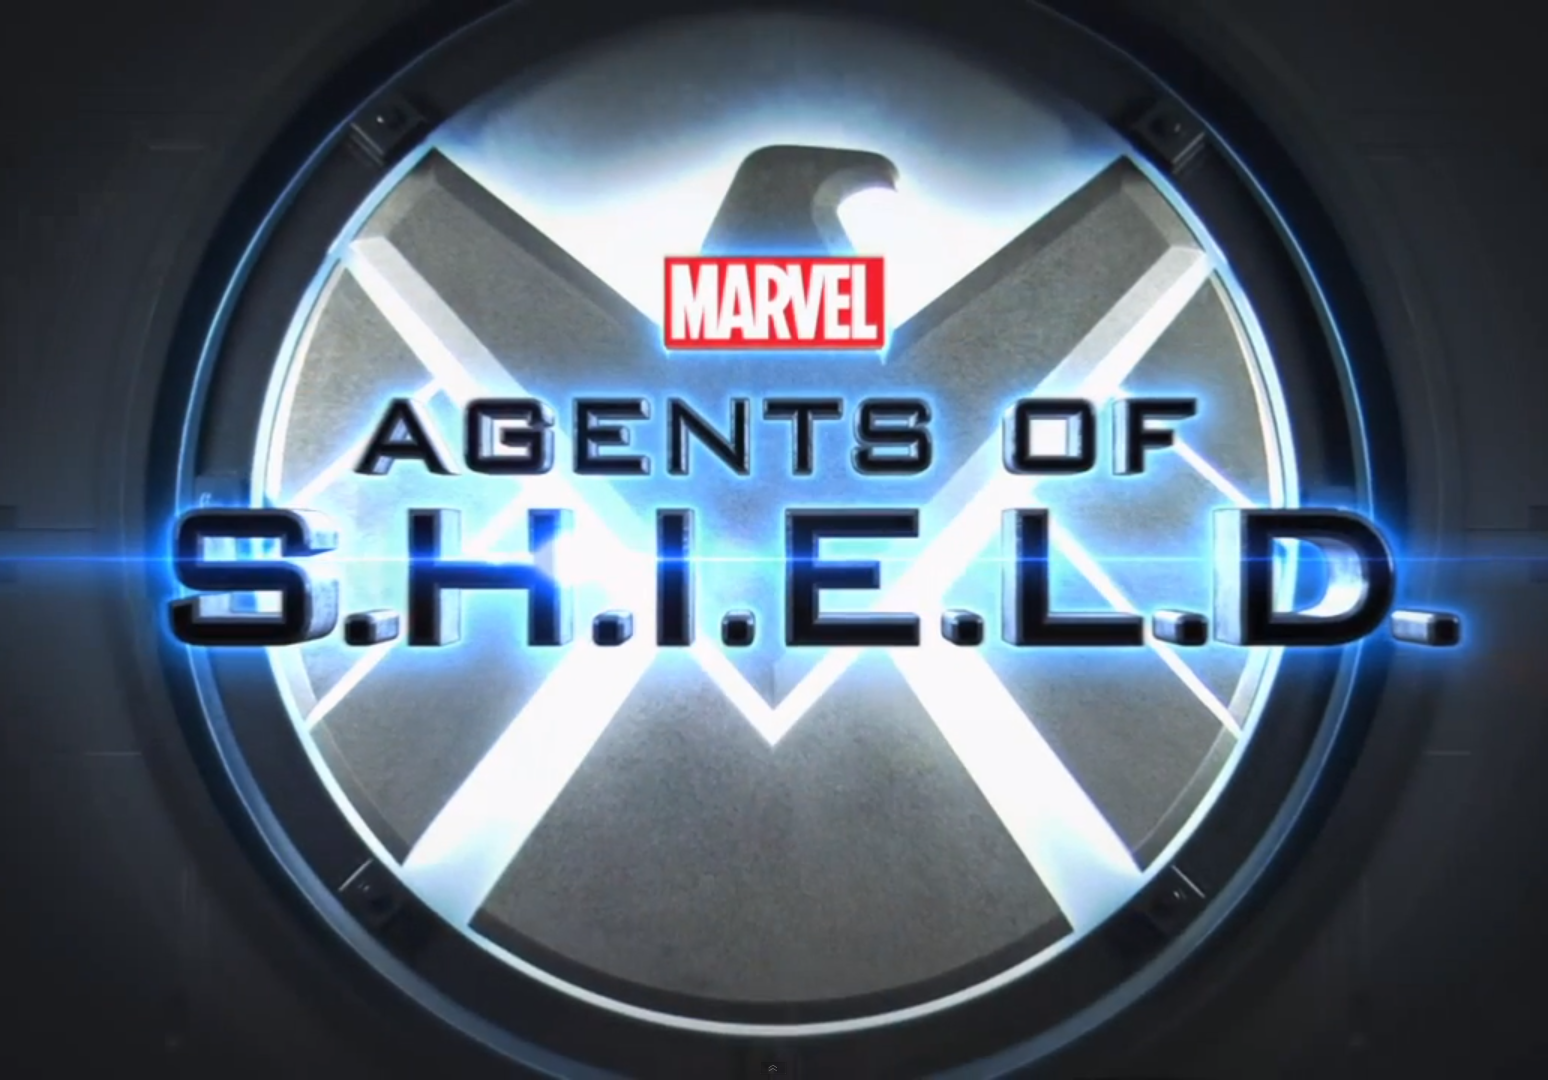 Marvel's Agents of S.H.I.E.L.D. - First Look